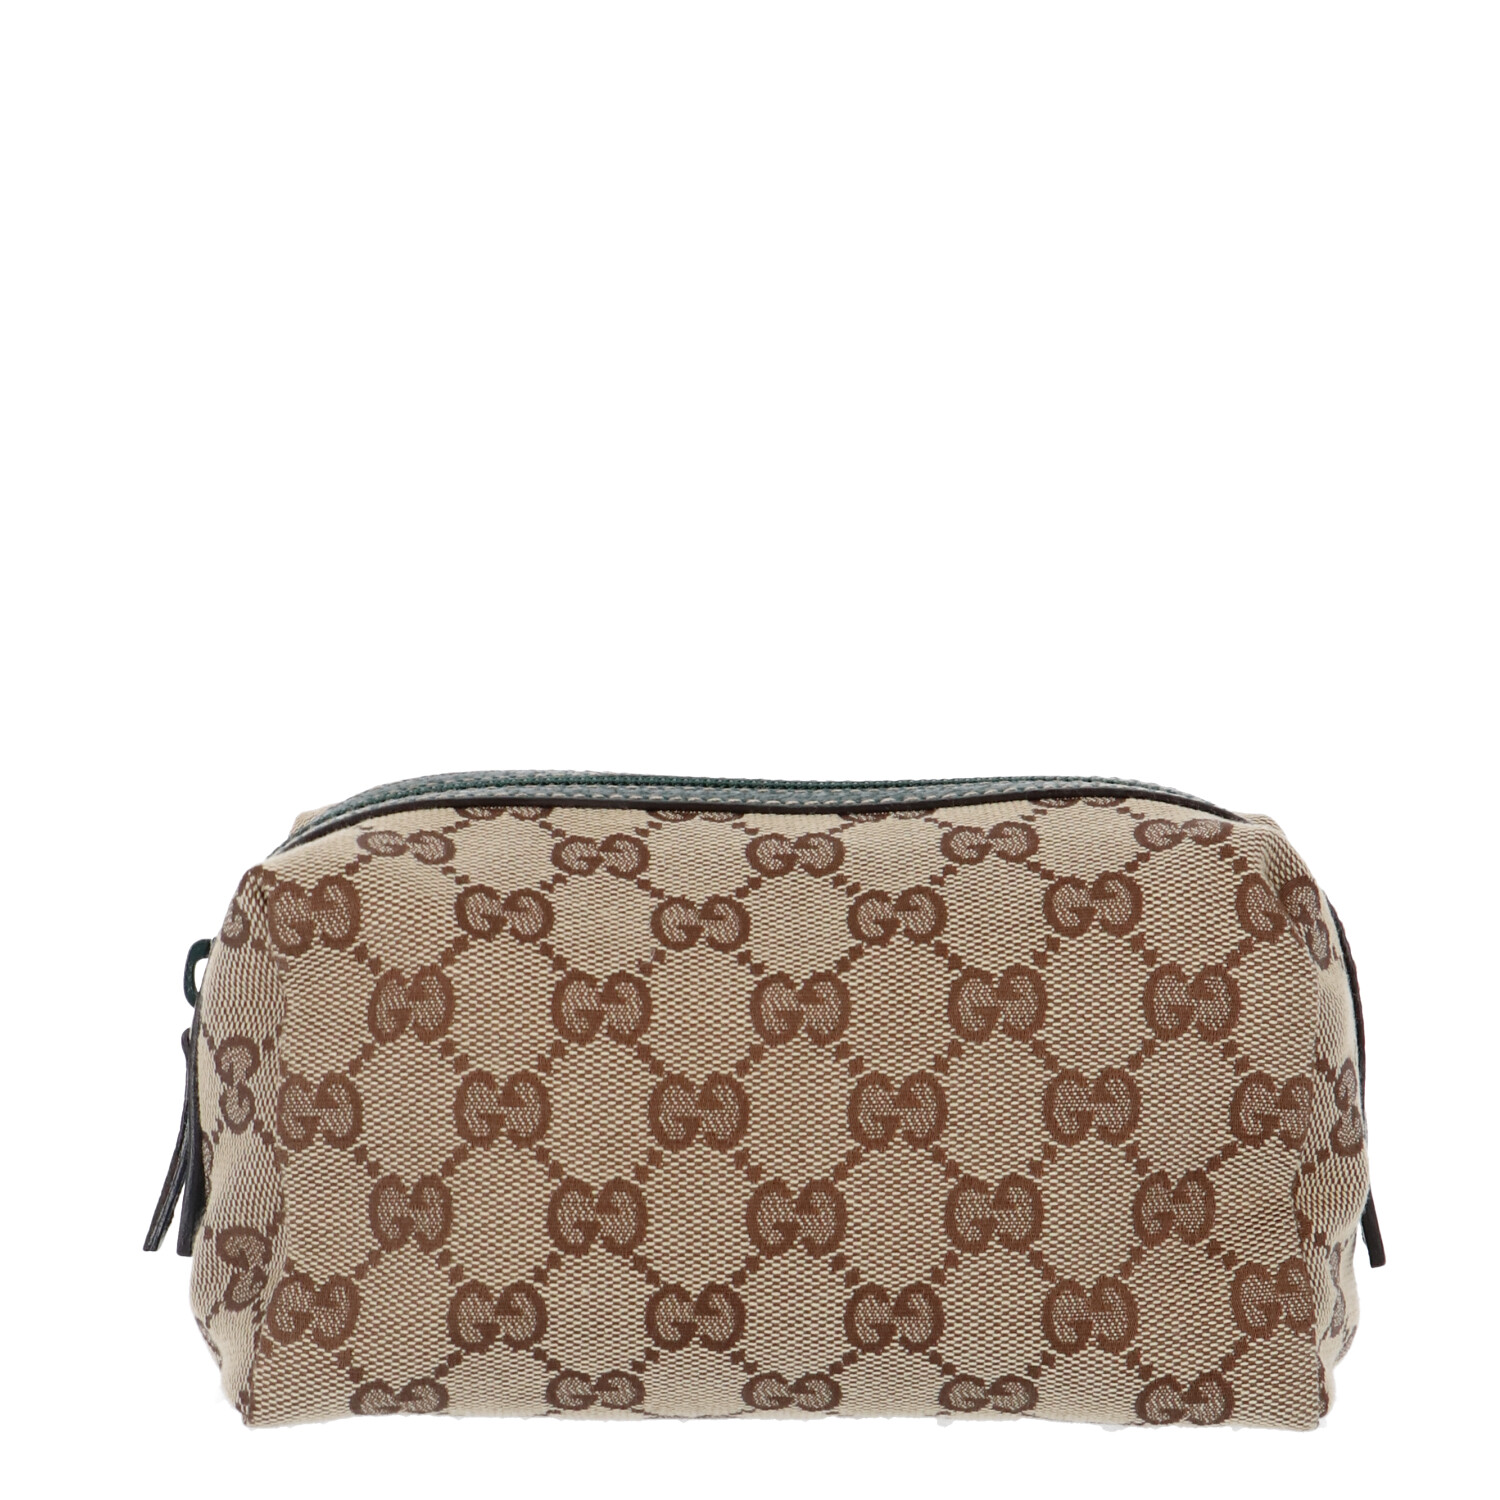 Gucci Brown Calfskin Leather Shoulder Bag